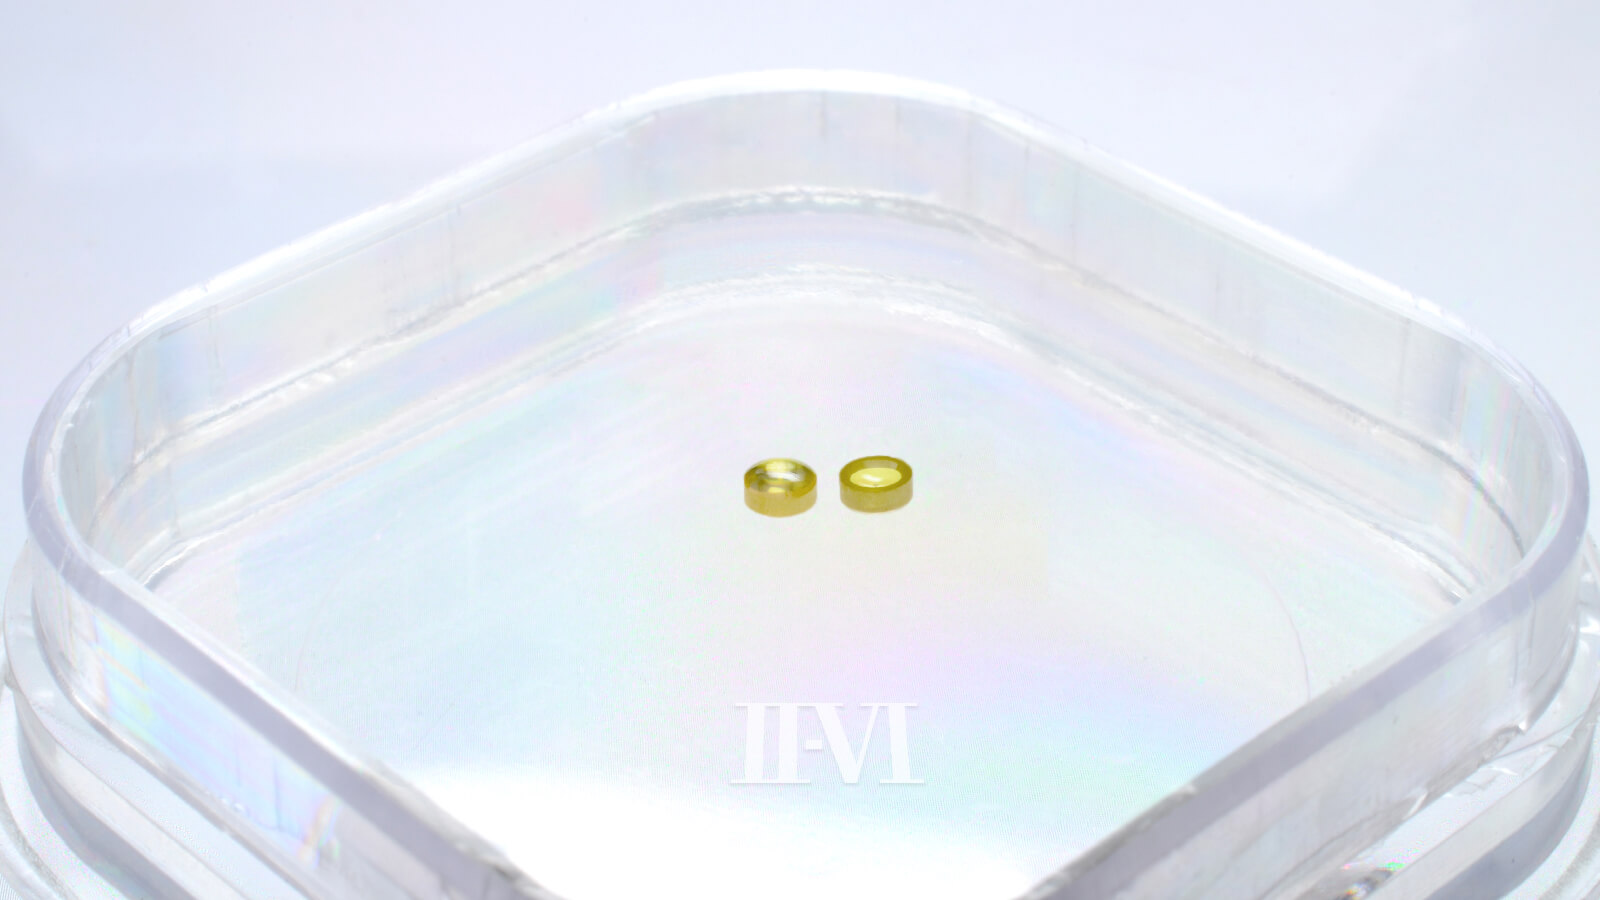 Infrared Aspheric Micro Lenses Image